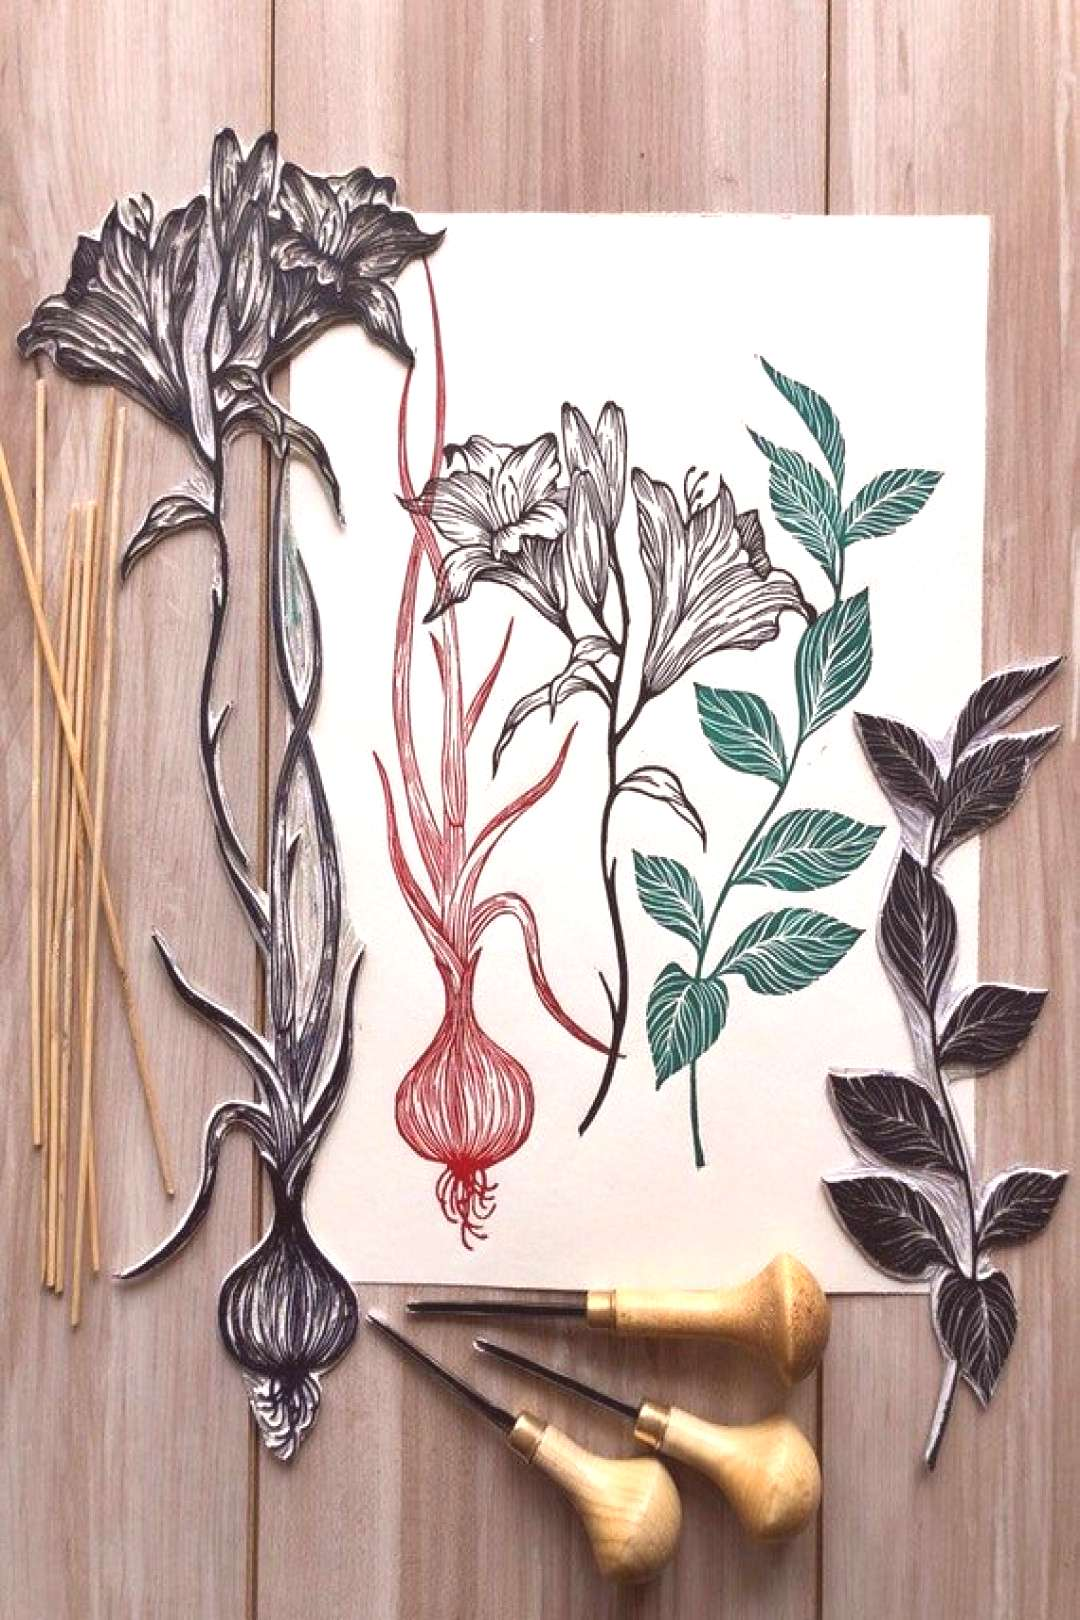 Bouquet with onions. Original linocut print - The original linocut. Each print has sign, date and